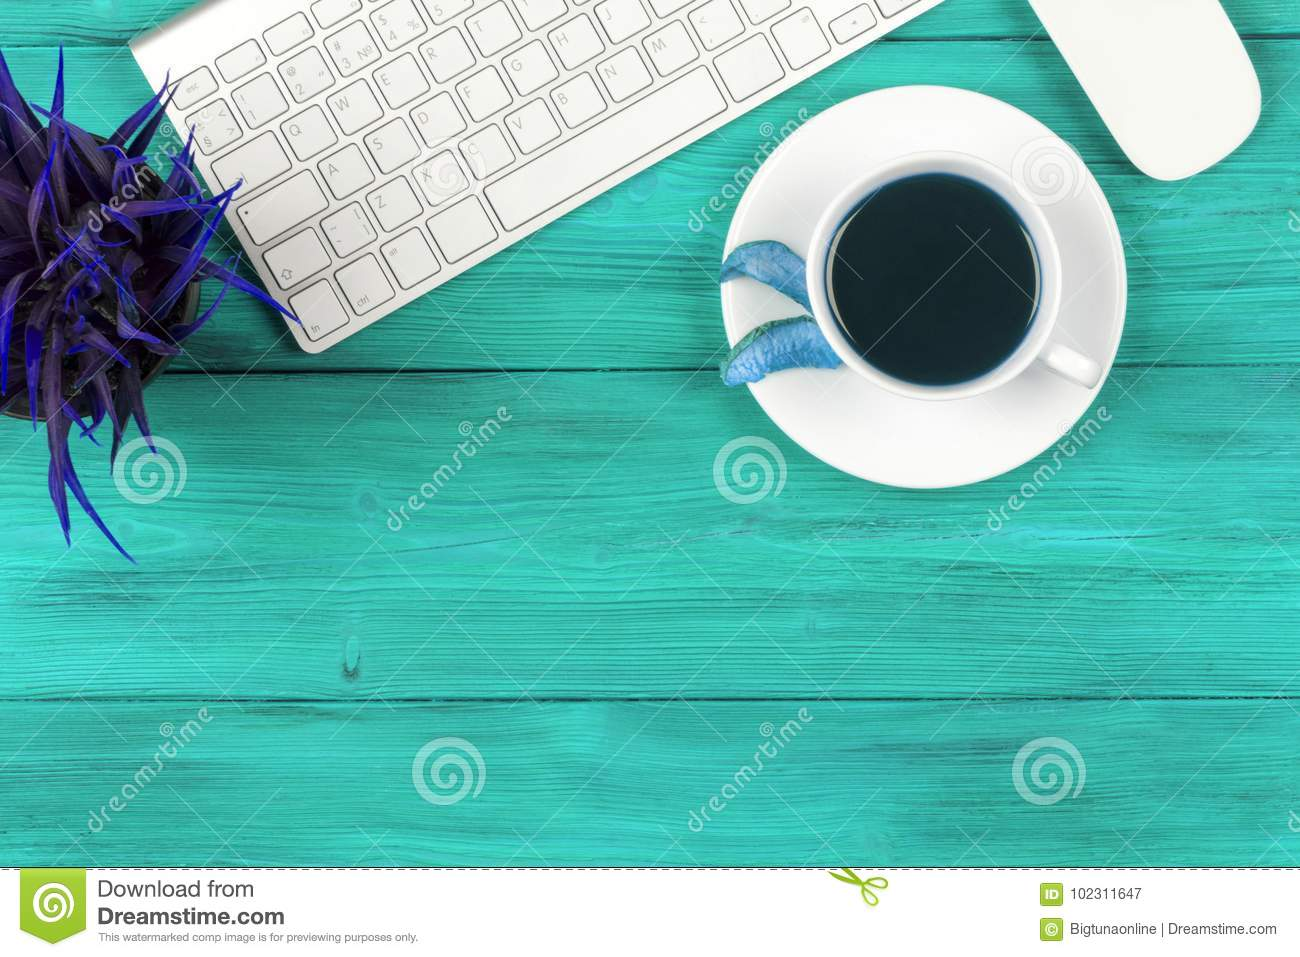 Office desk with copy space. Digital devices wireless keyboard and mouse on blue wooden table with cup of fresh coffee, top view